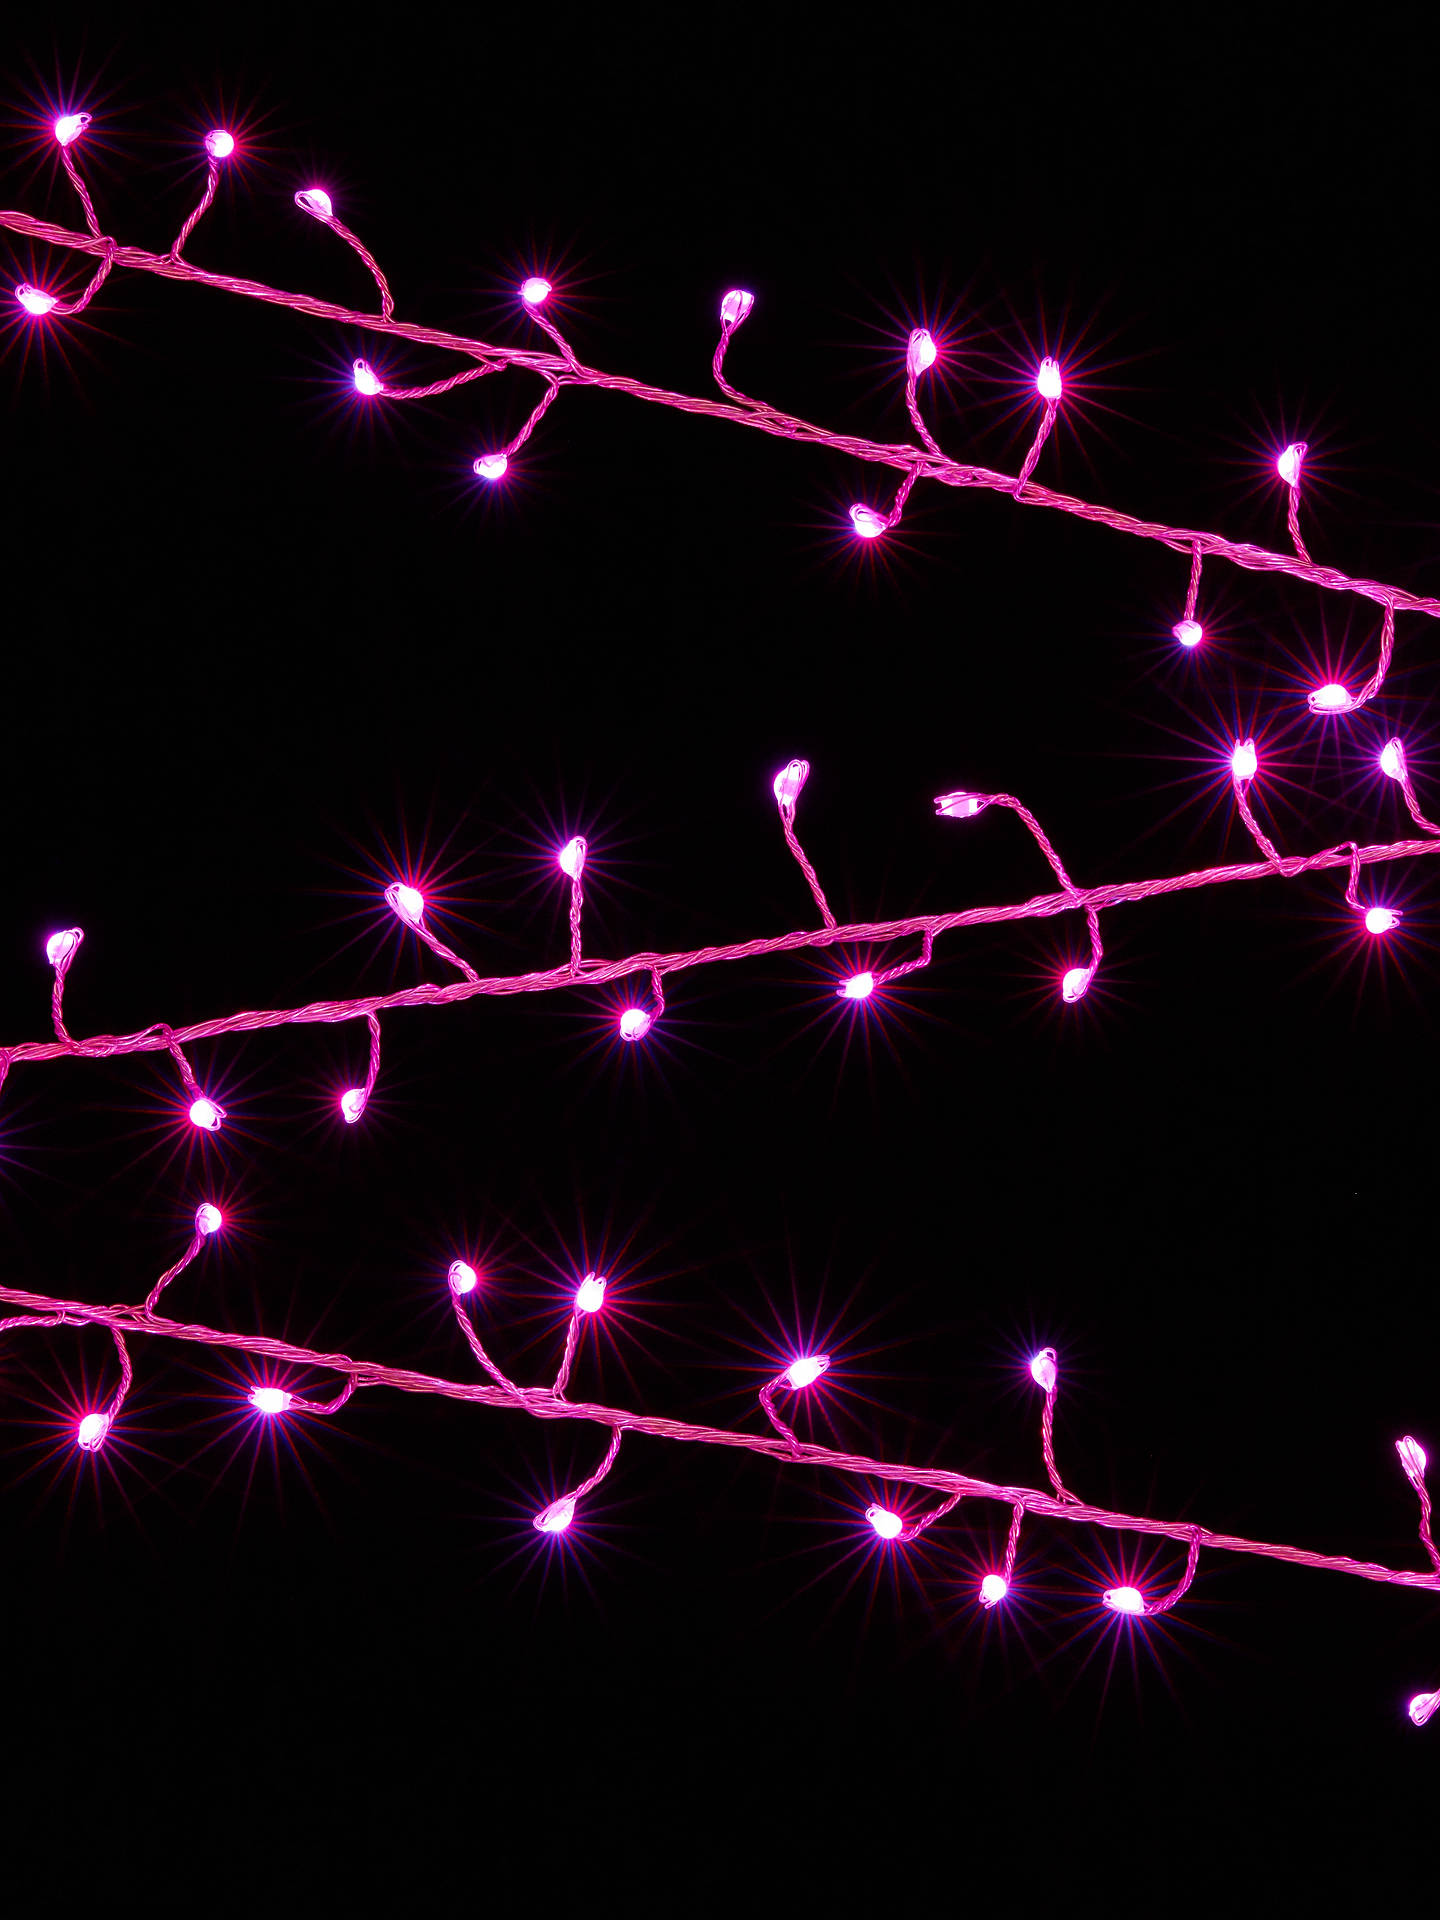 BuyJohn Lewis & Partners 240 Fire Cracker Lights, Multi, 11m Online at johnlewis.com